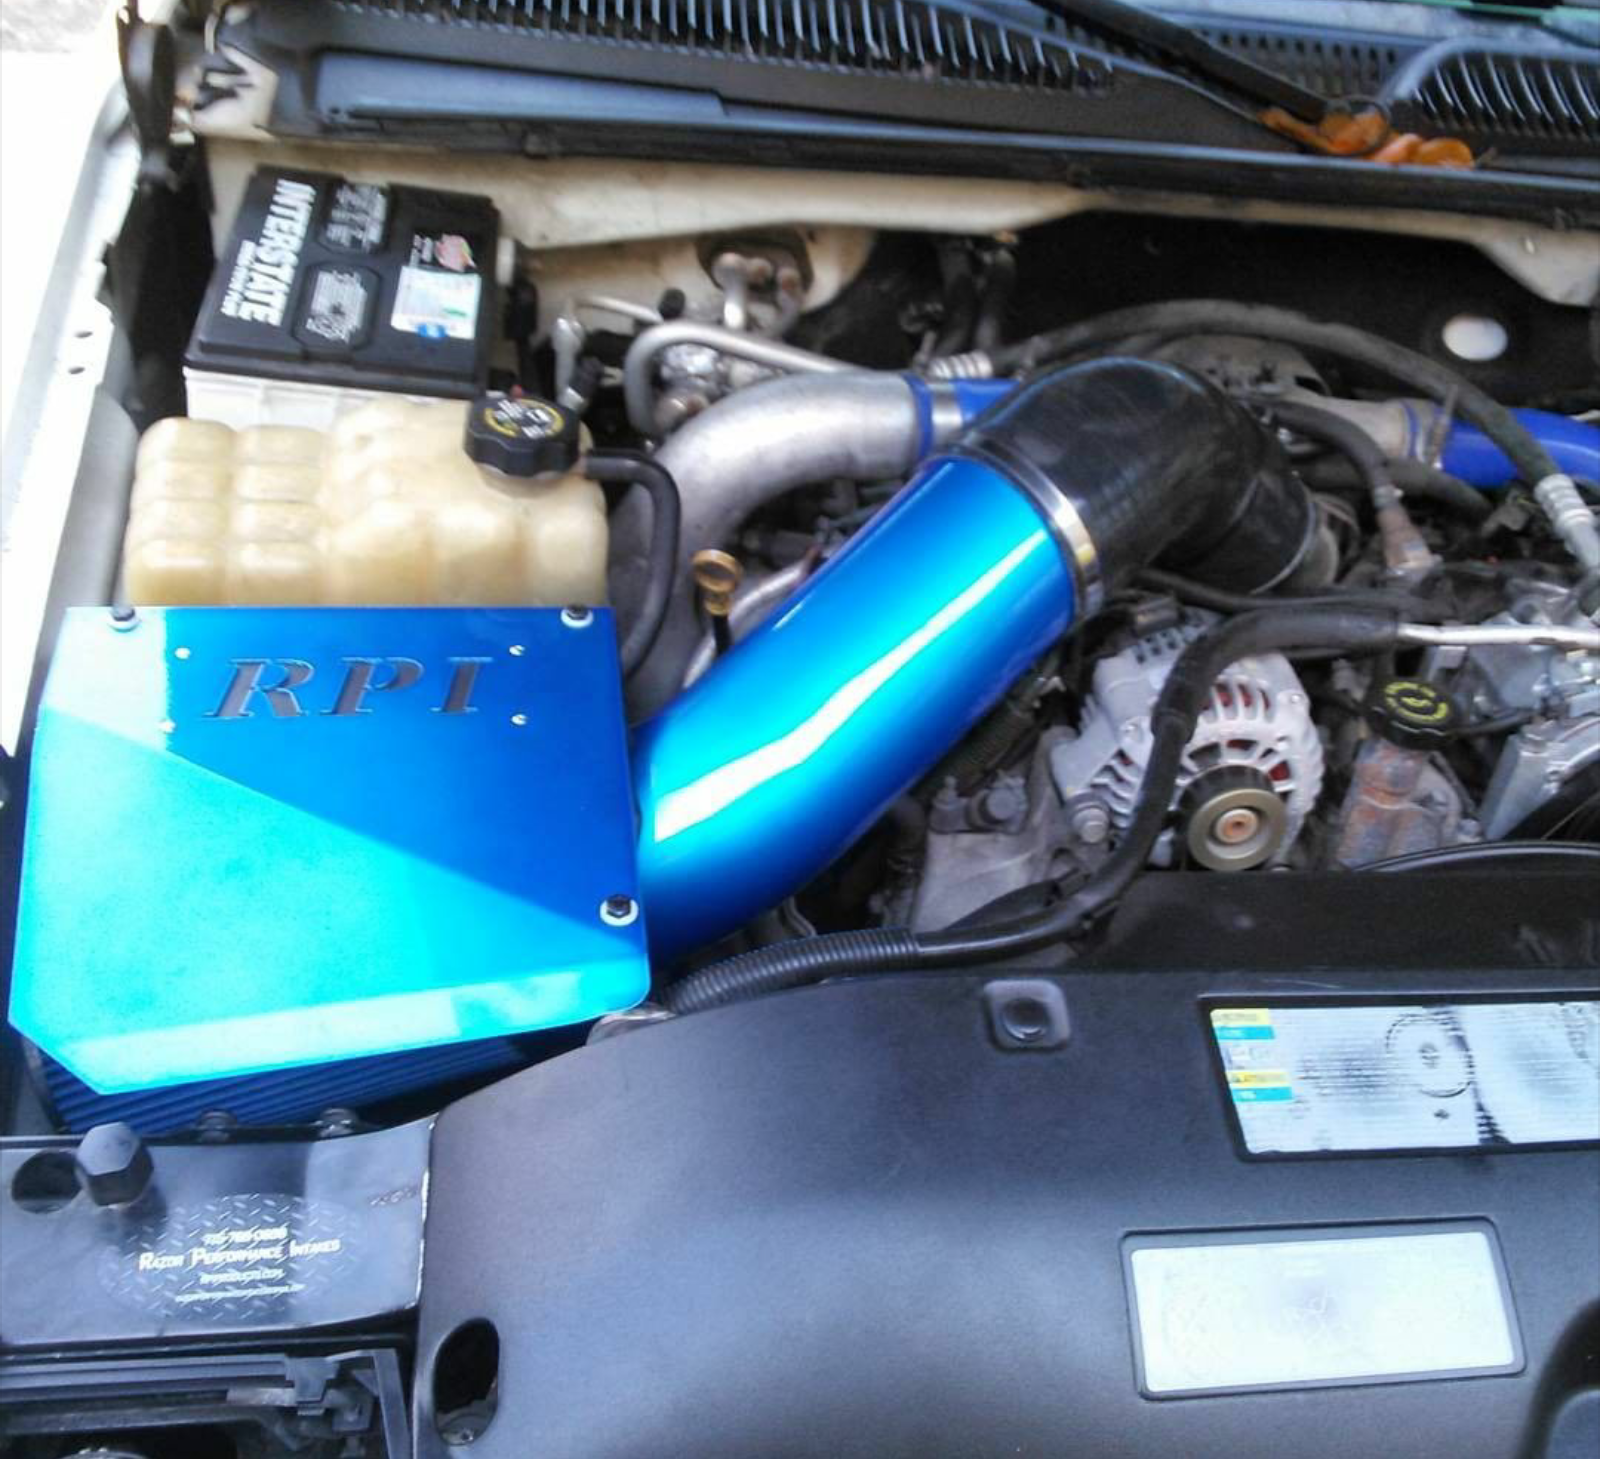 5 Inch RPI Diesel cold air intake system for Duramax